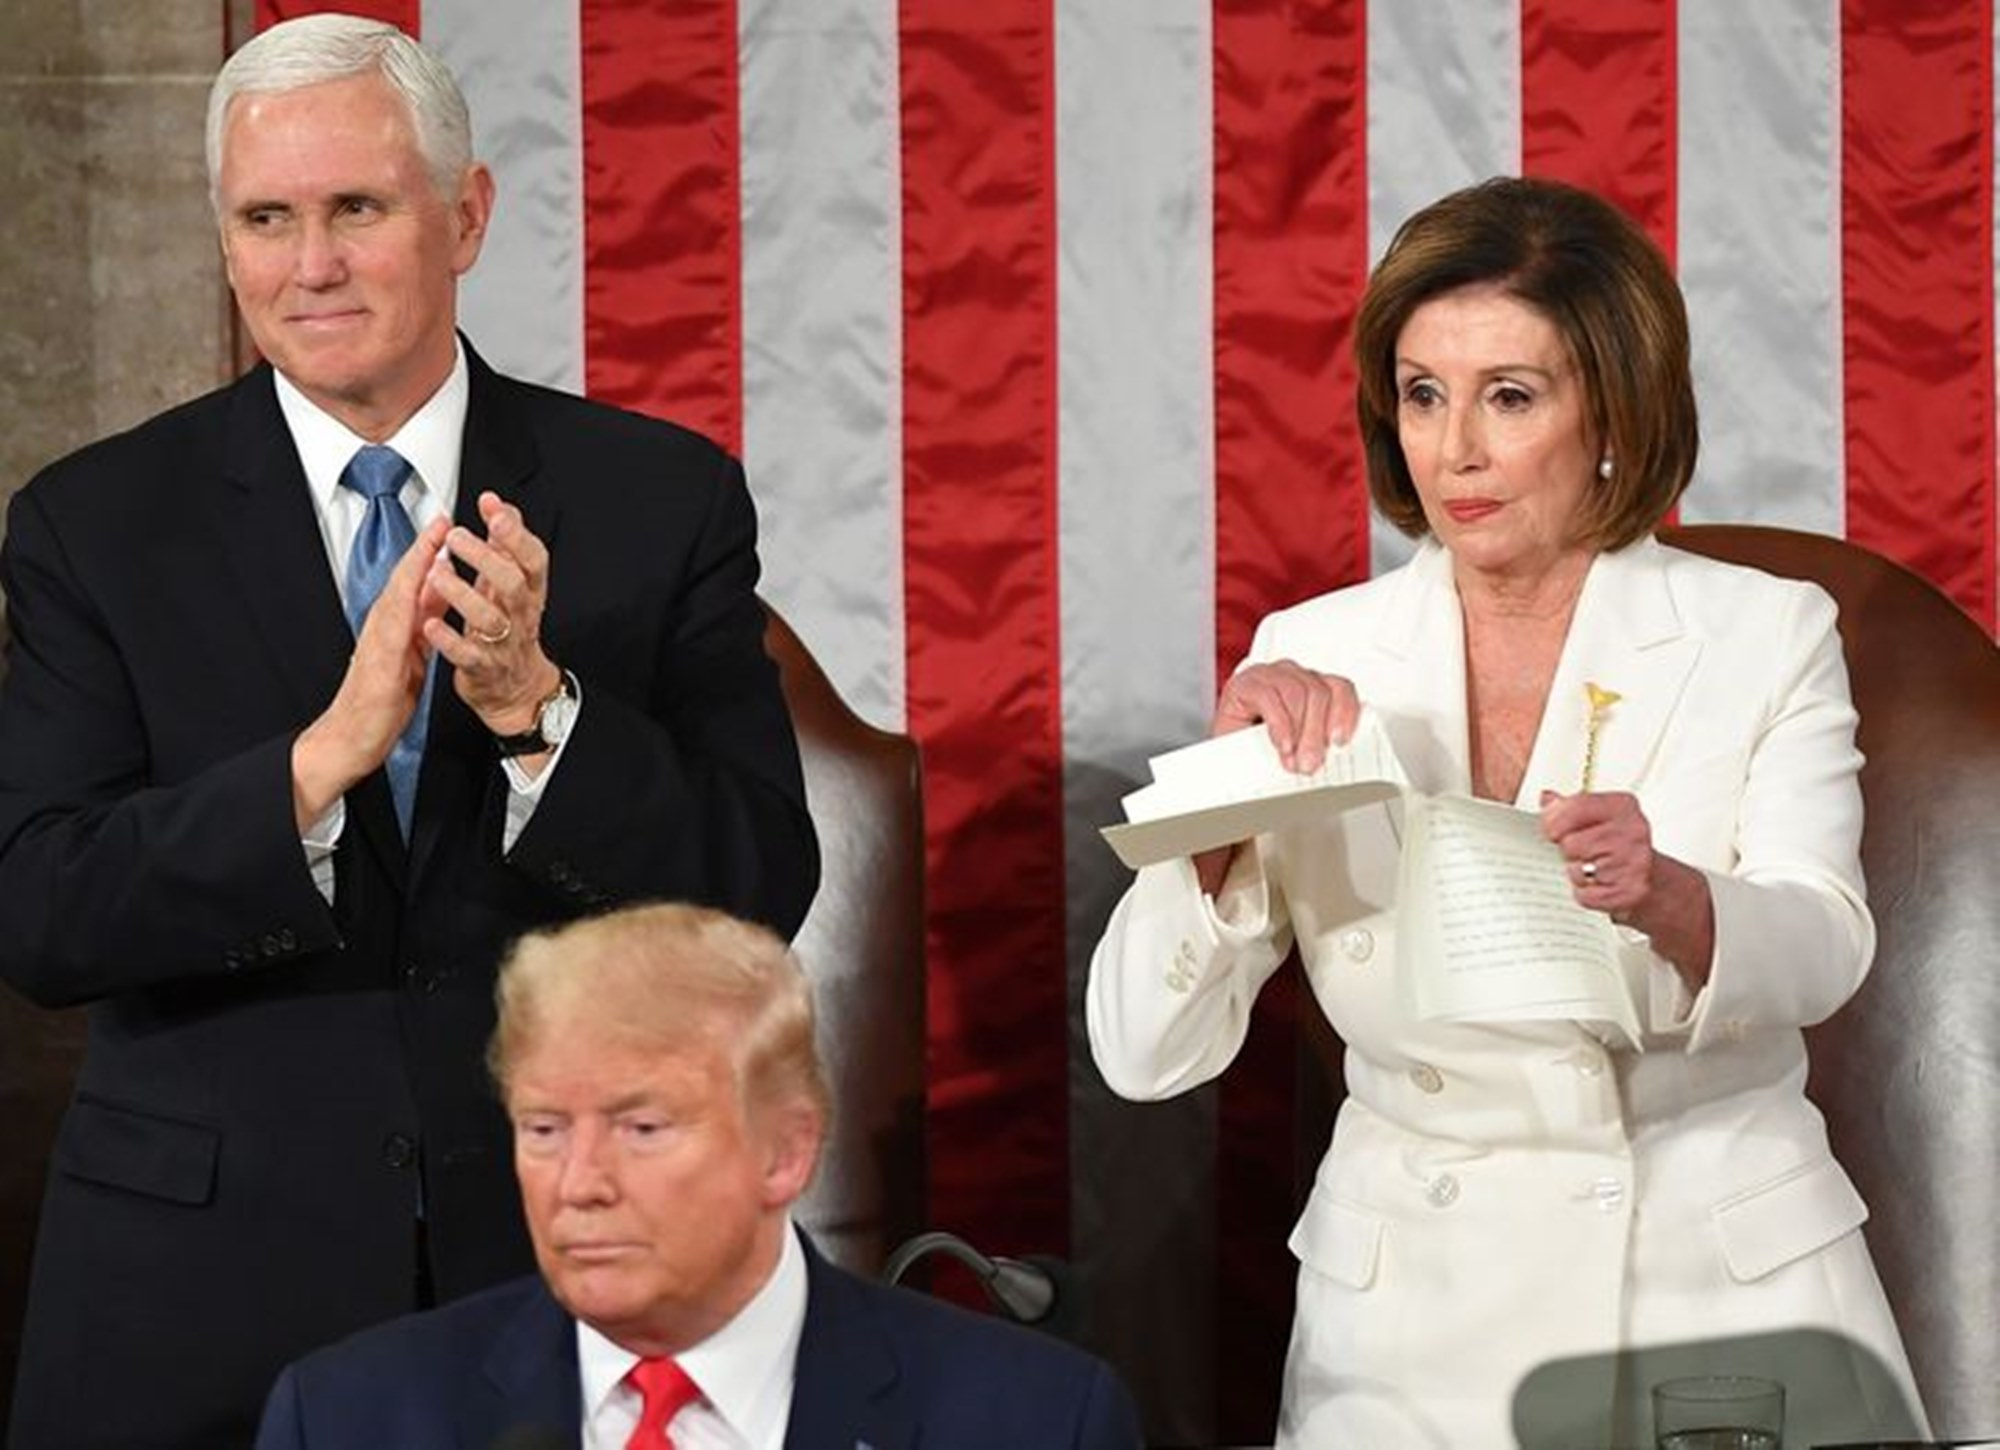 Donald Trump Mike Pence Nancy Pelosi State Of The Union Speech